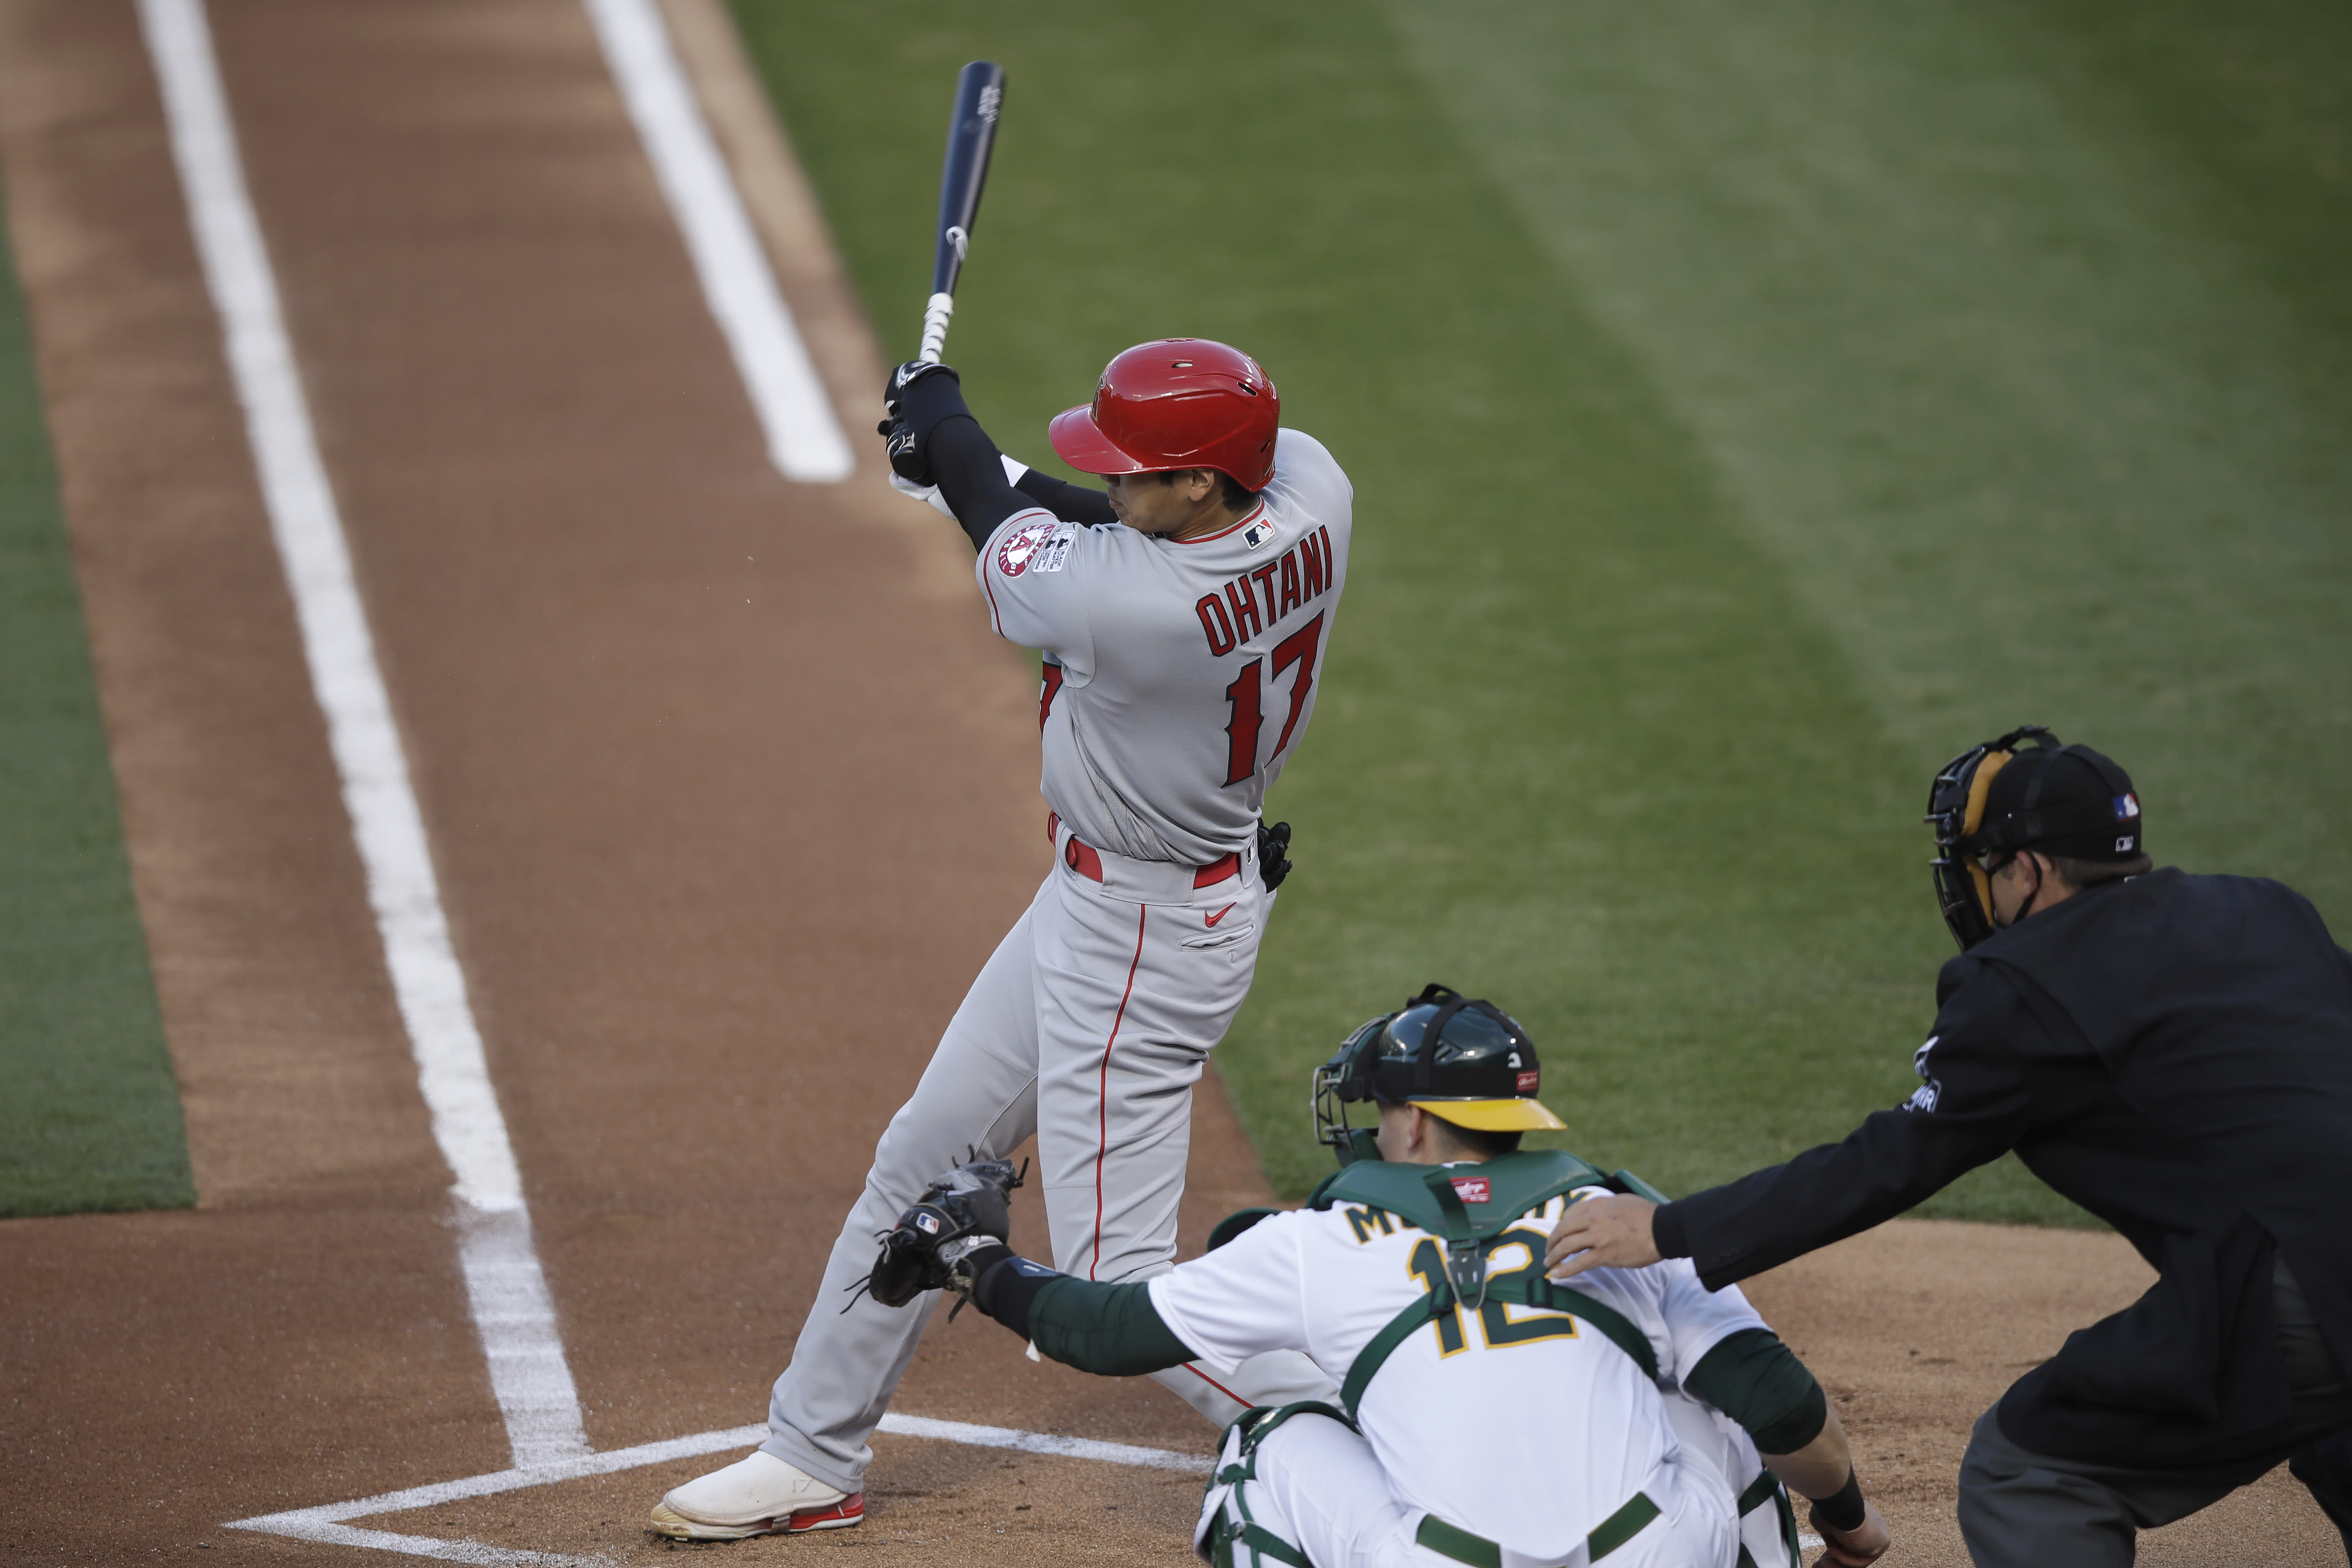 Los Angeles Angels' Shohei Ohtani singles against the Oakland Athletics during the first inning of a baseball game in Oakland, Calif., Friday, July 24, 2020. (AP Photo/Jeff Chiu)